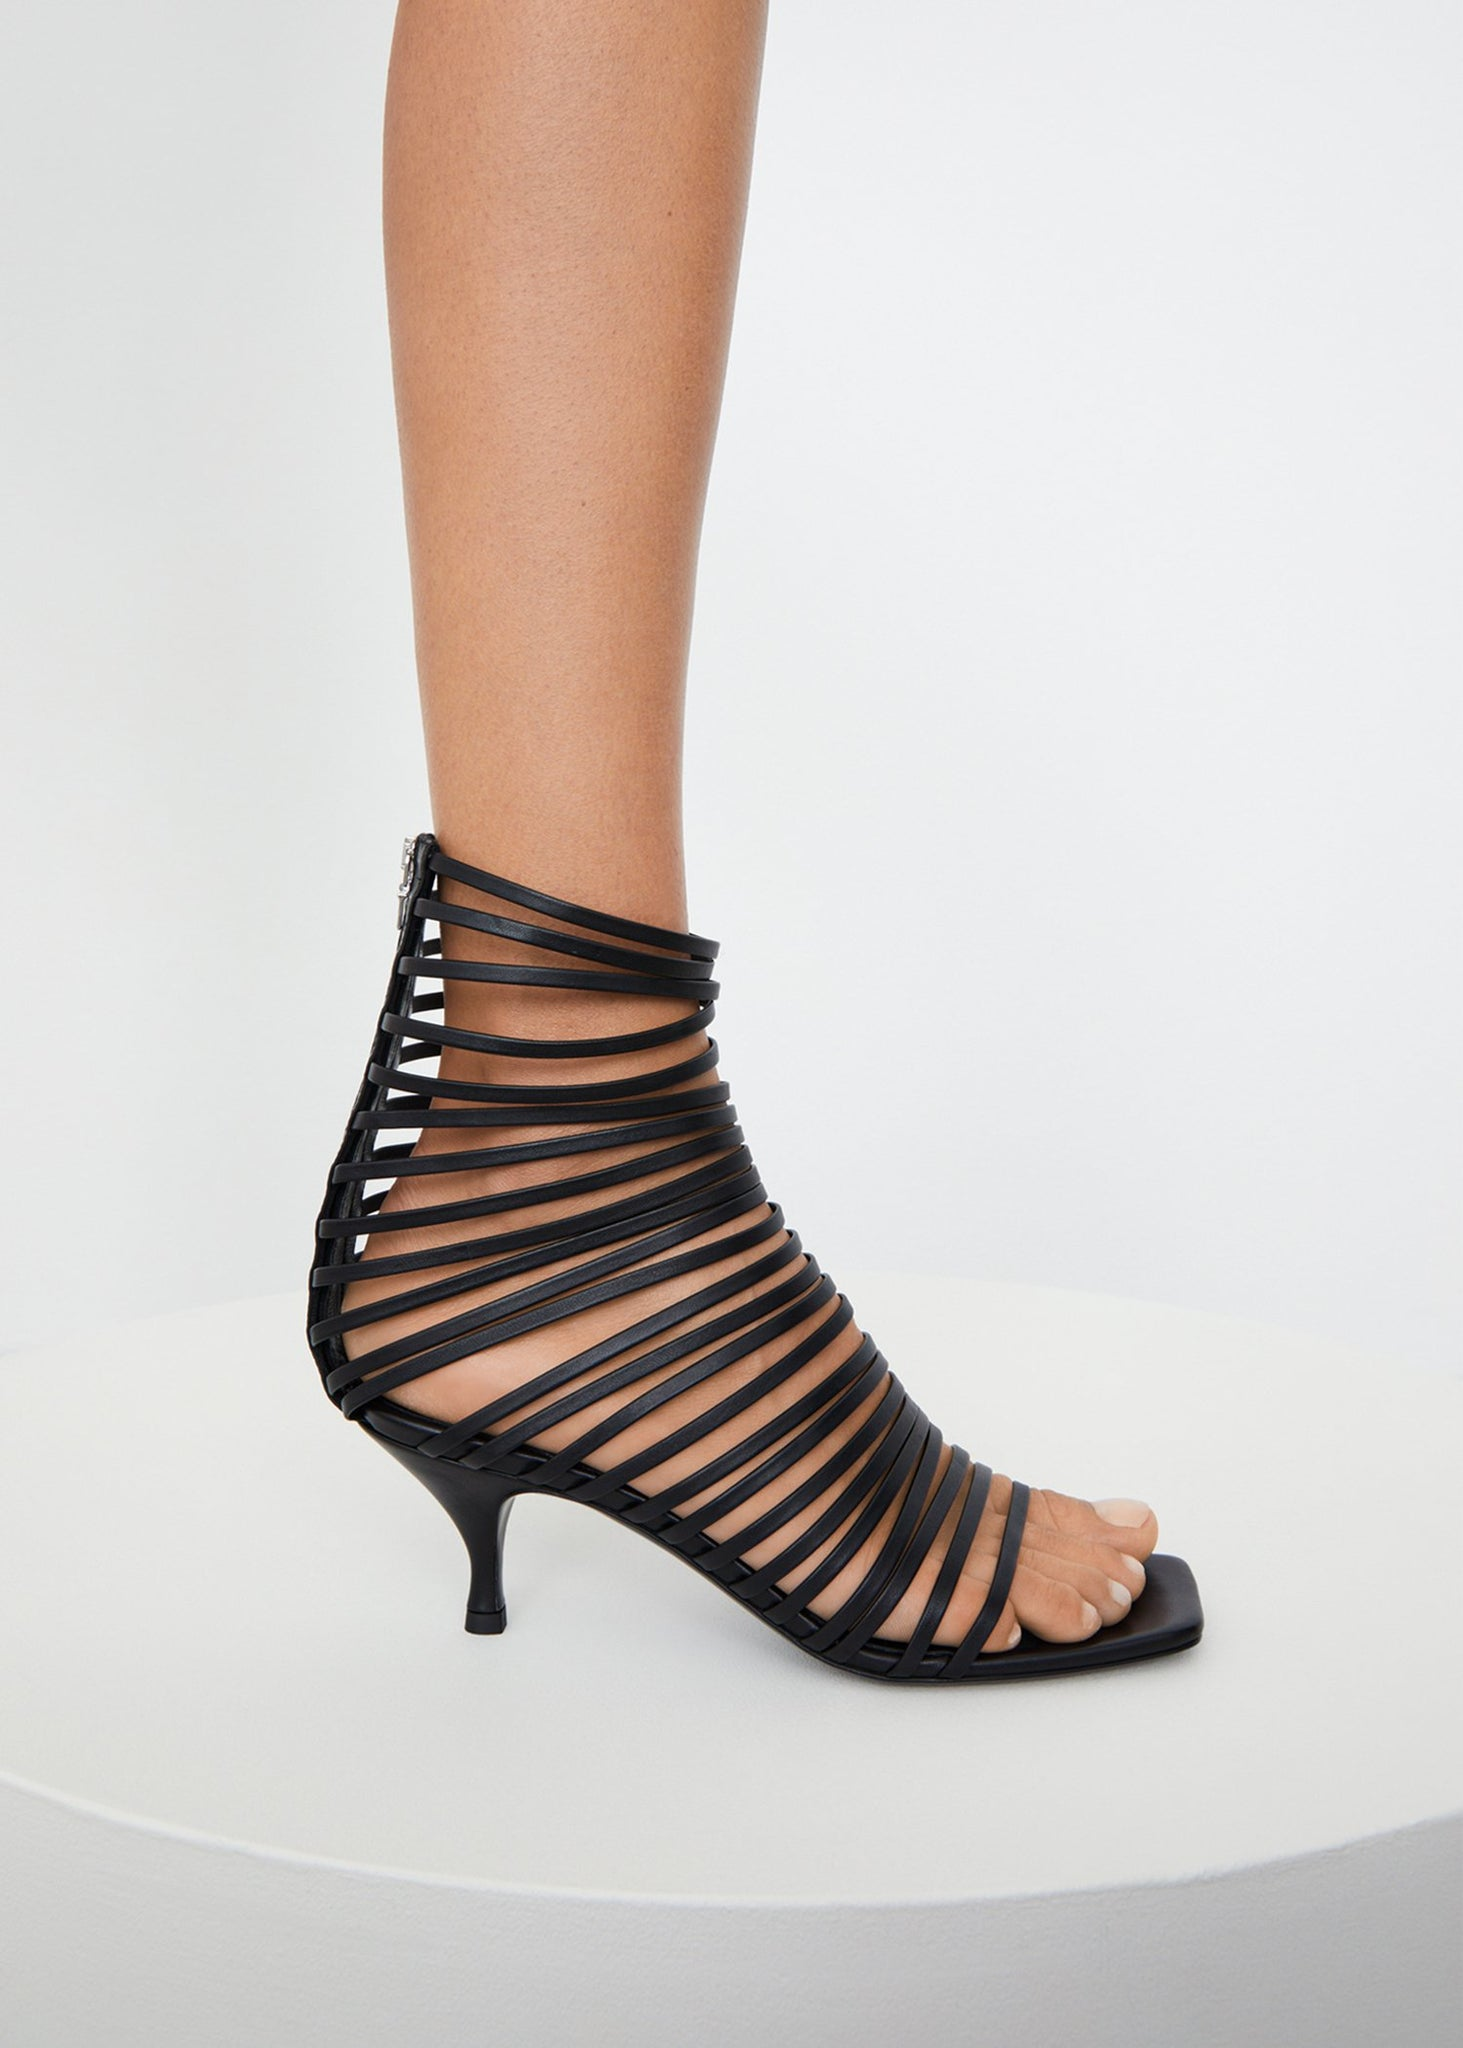 The Multi Strappy Sandal